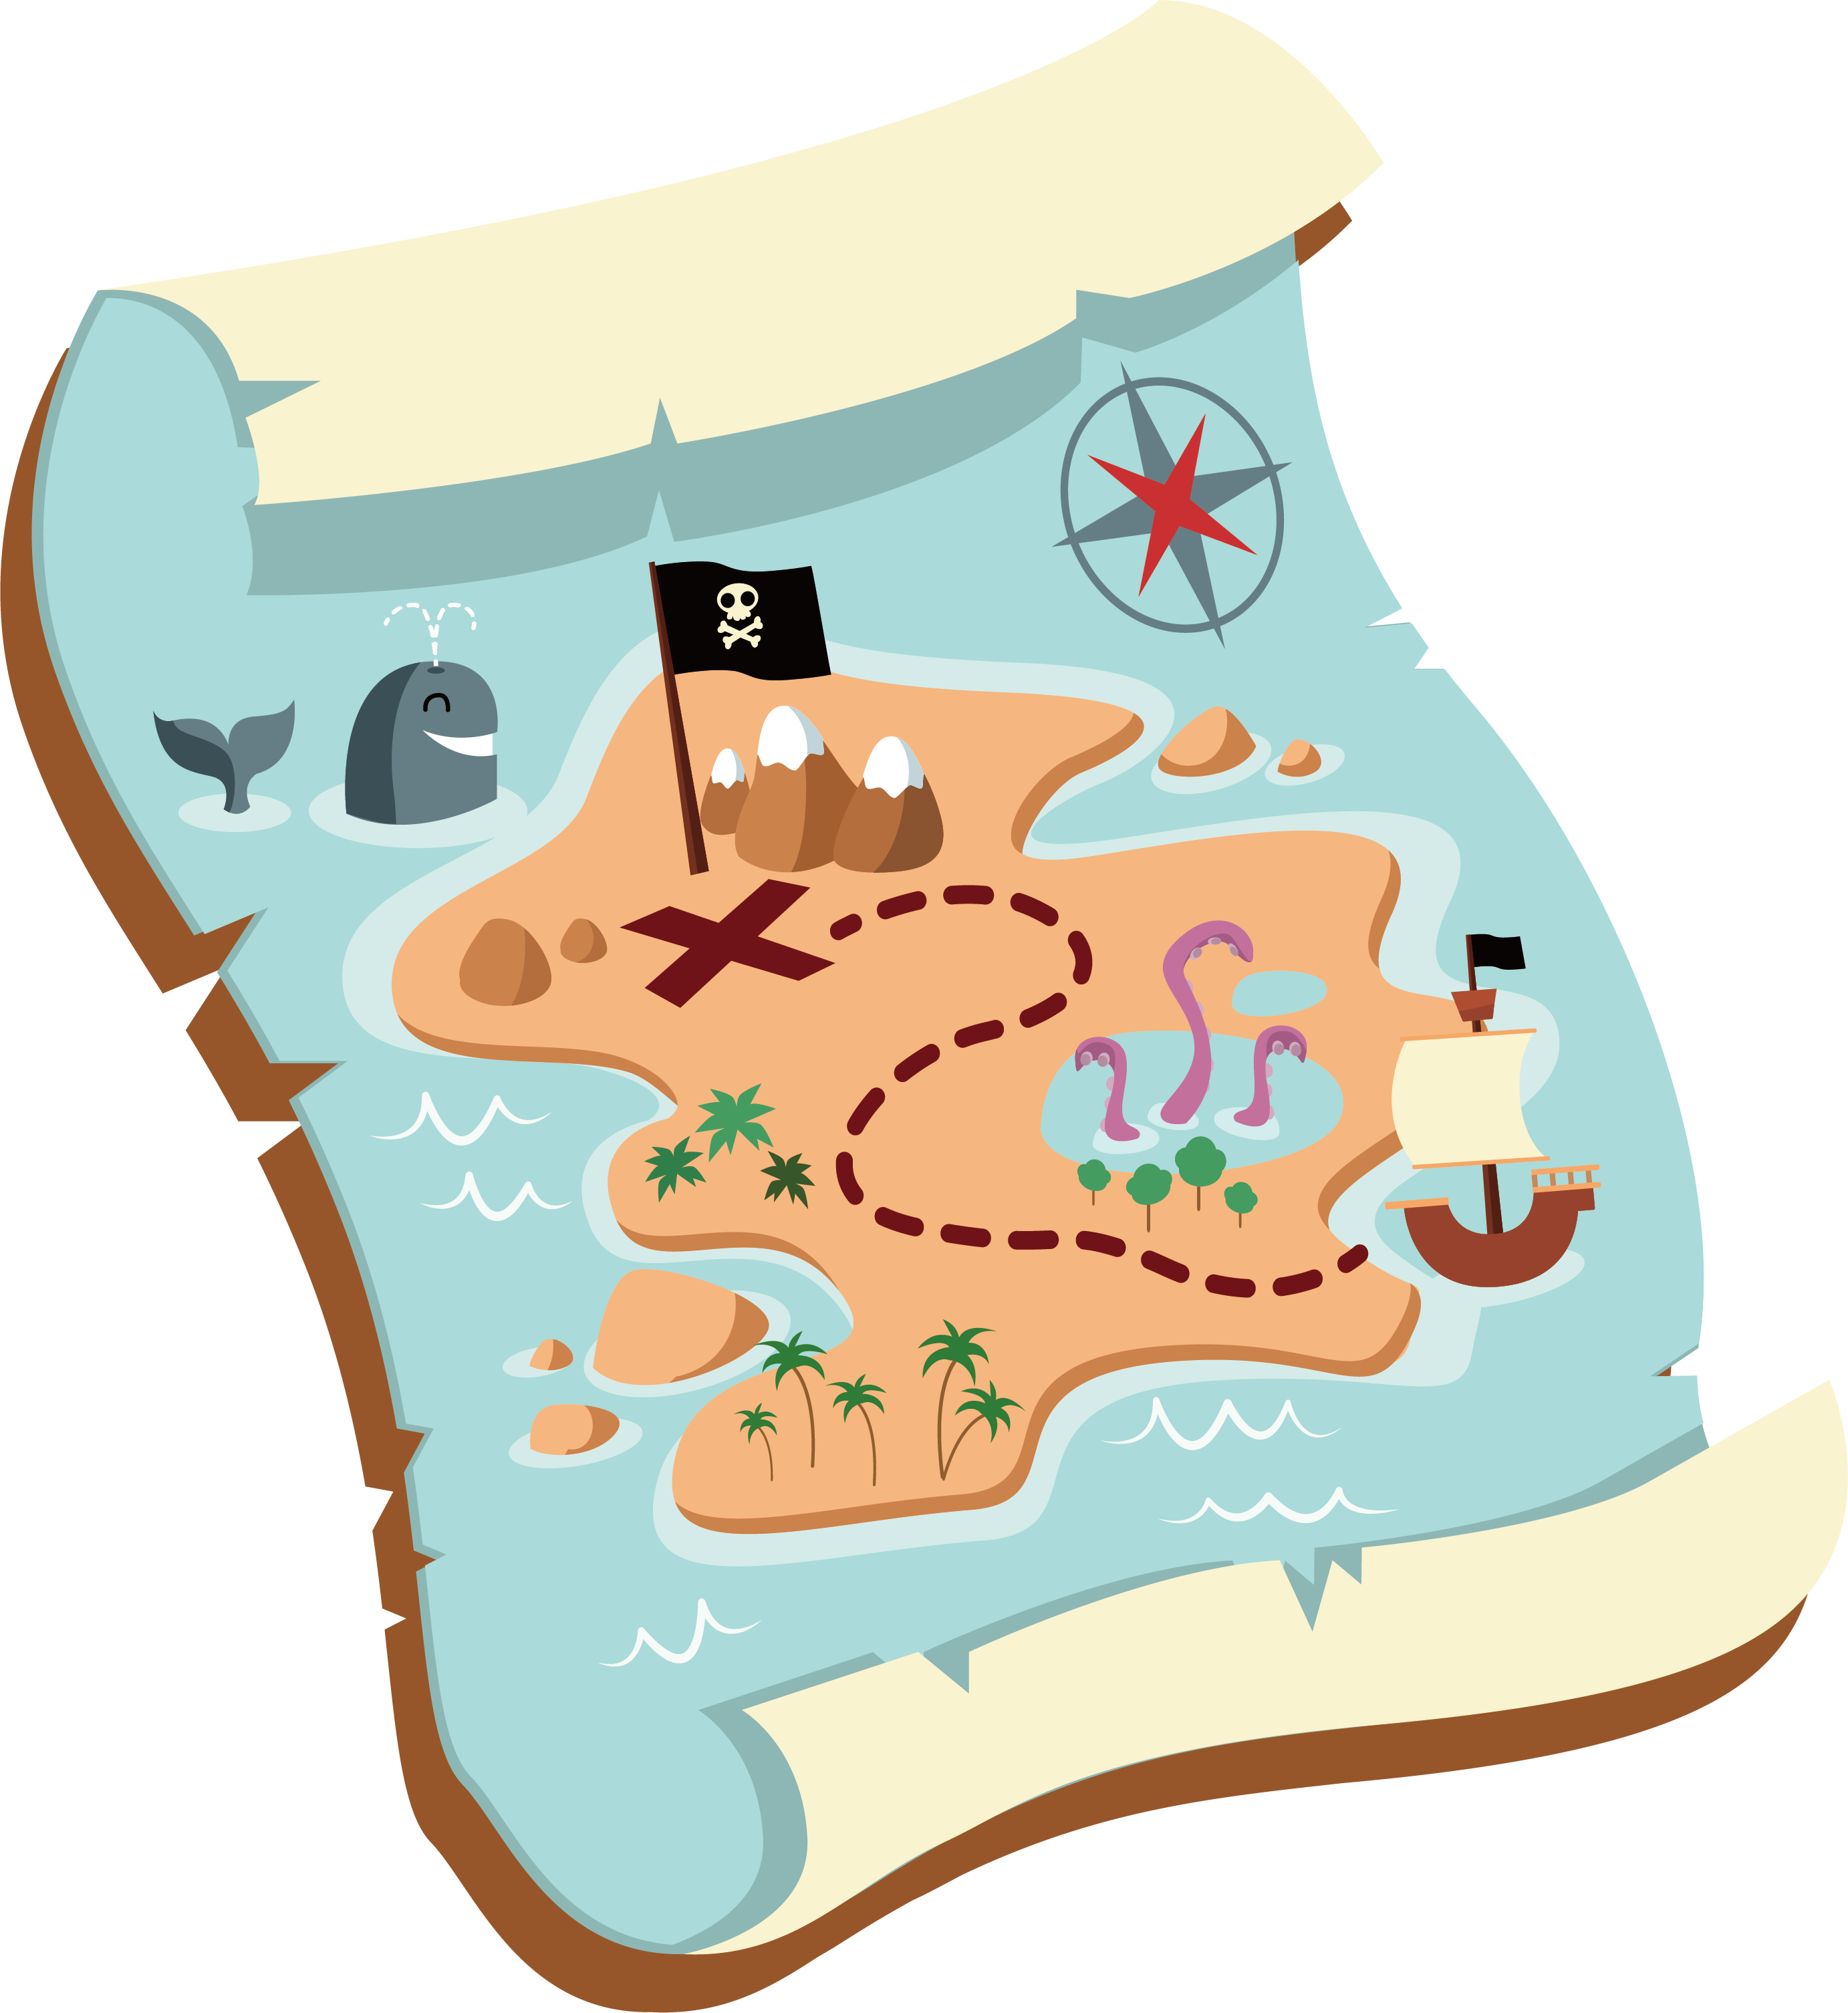 Clipart treasure map clipart library download Clip art treasure map clipart images gallery for free download ... clipart library download